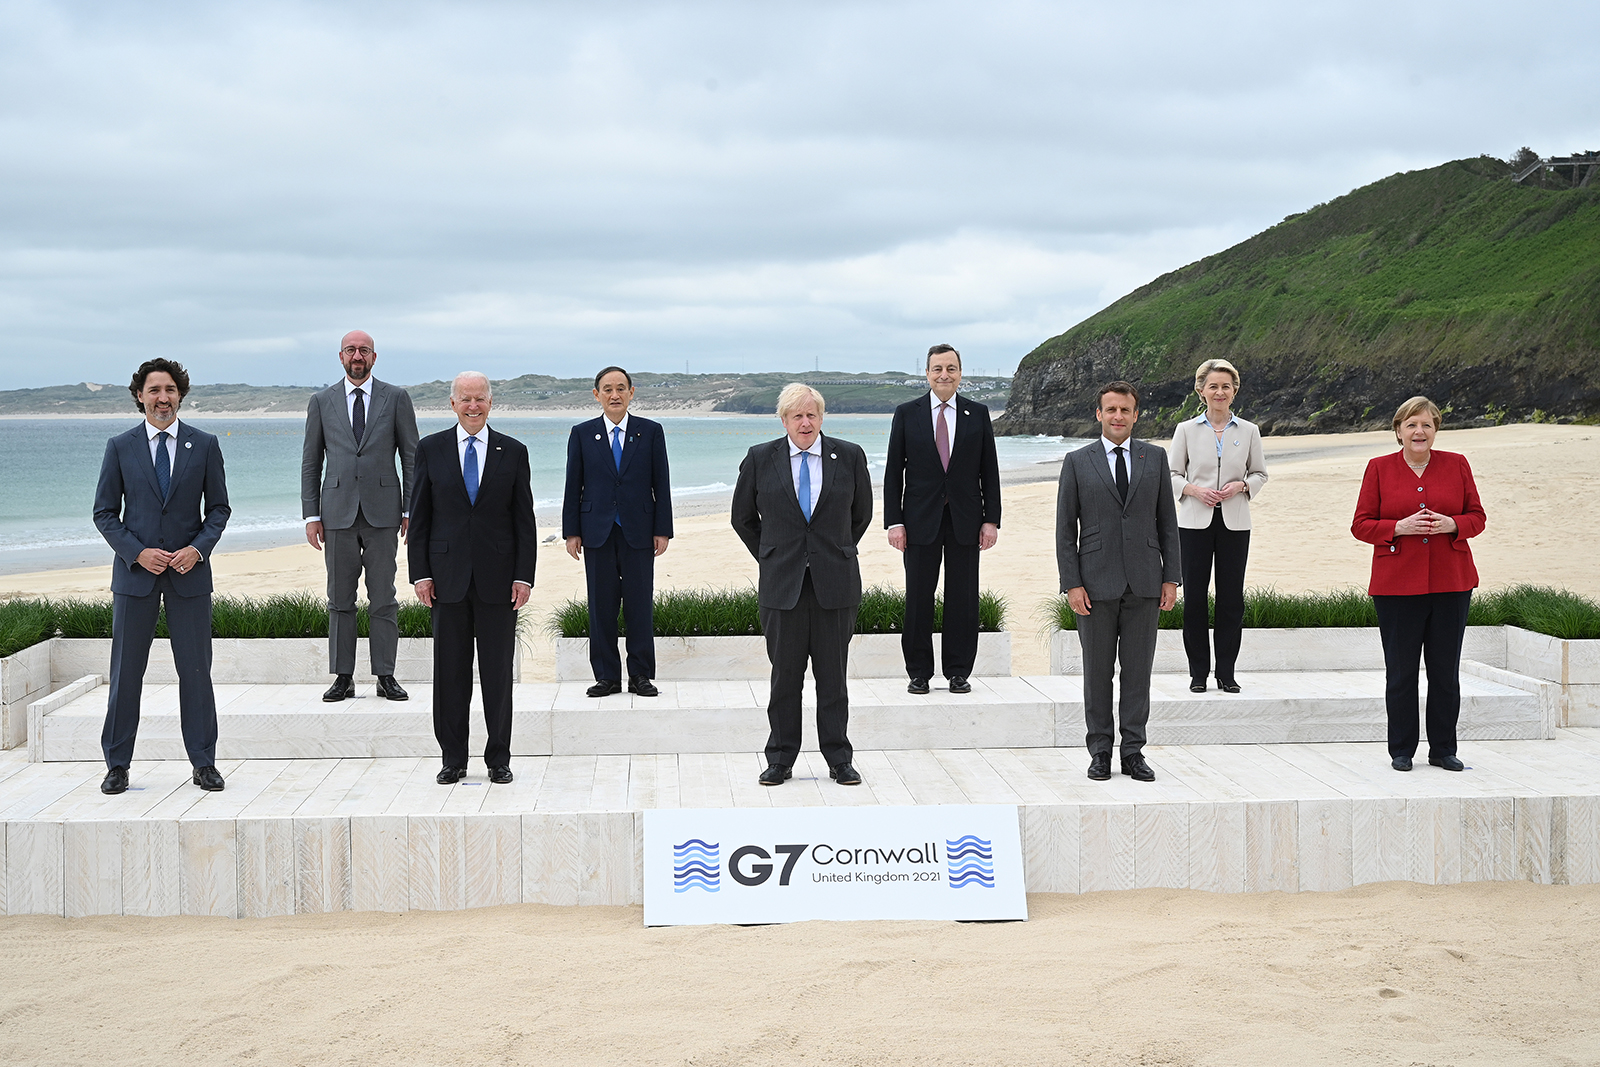 G7 leaders share a bold vision for a net zero future. But the devil is in the lack of detail